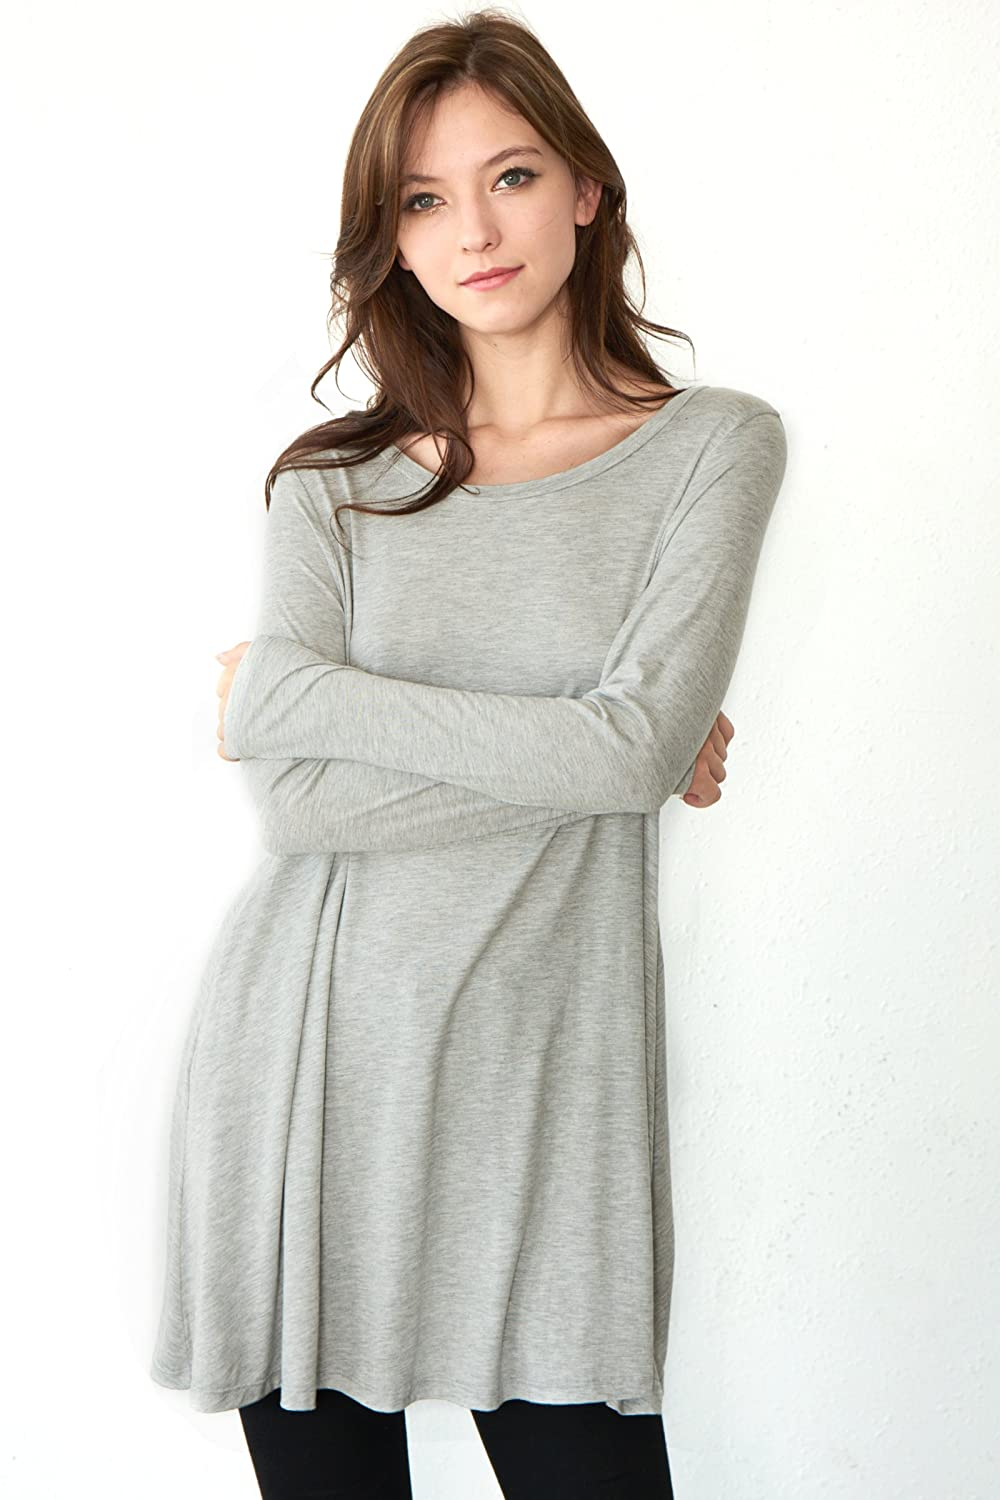 1662db2f55f5e Cameo   Myth Women s Sleeve Easy Wear Jersey Tunic Dress with Side Pocket  at Amazon Women s Clothing store